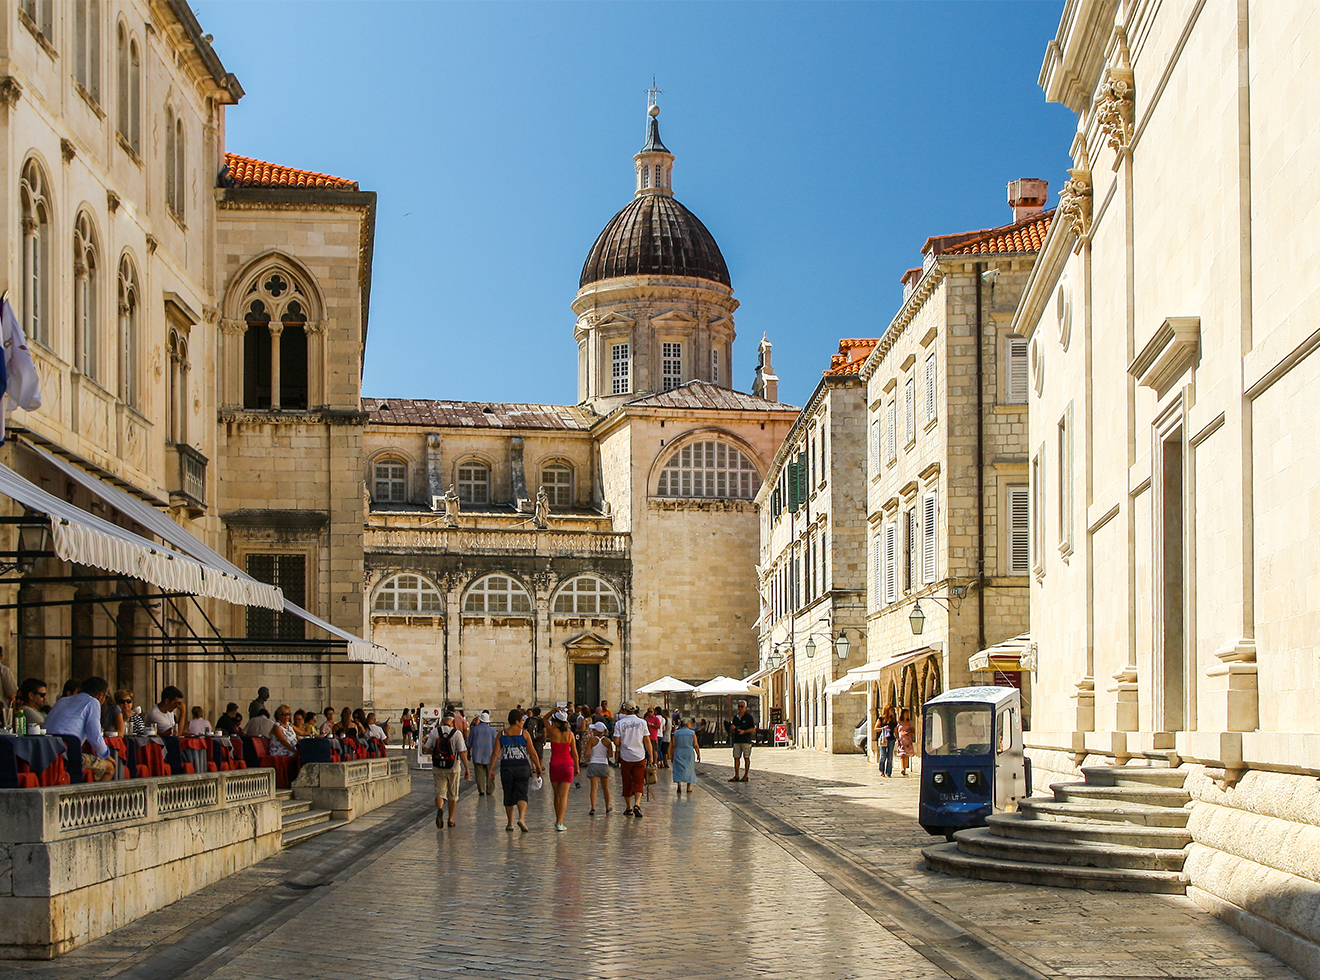 Tourists strolling near the cathedral in the Old City of Dubrovnik, Croatia